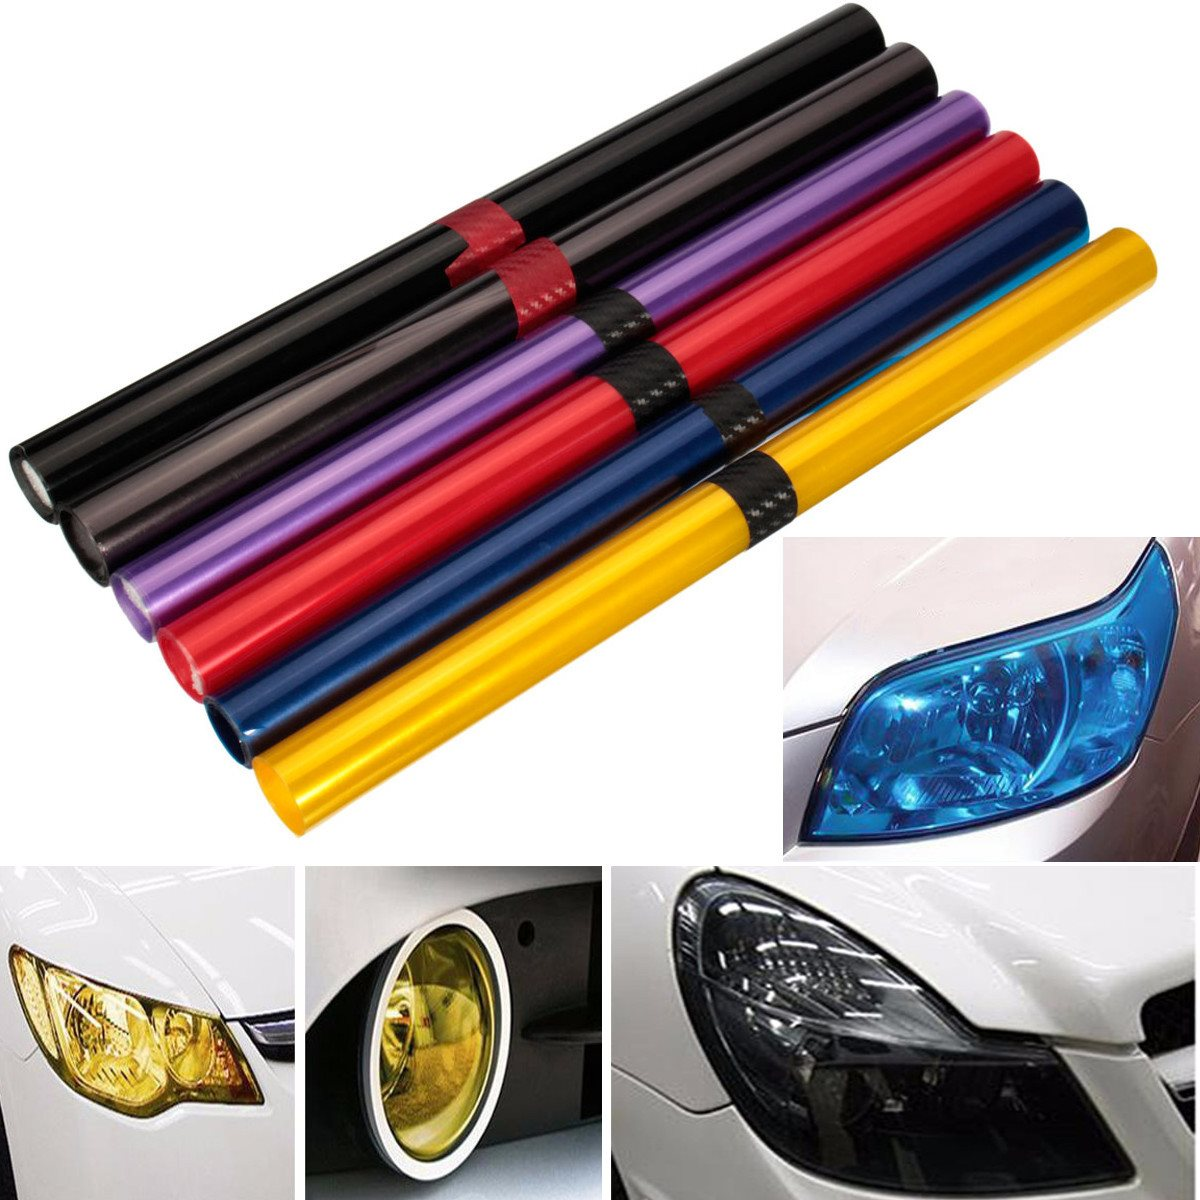 16 Inch x48 Inch Car Vehicle Shade Taillight Headlight PVC Foil Vinyl Film Cover 6 Color ...